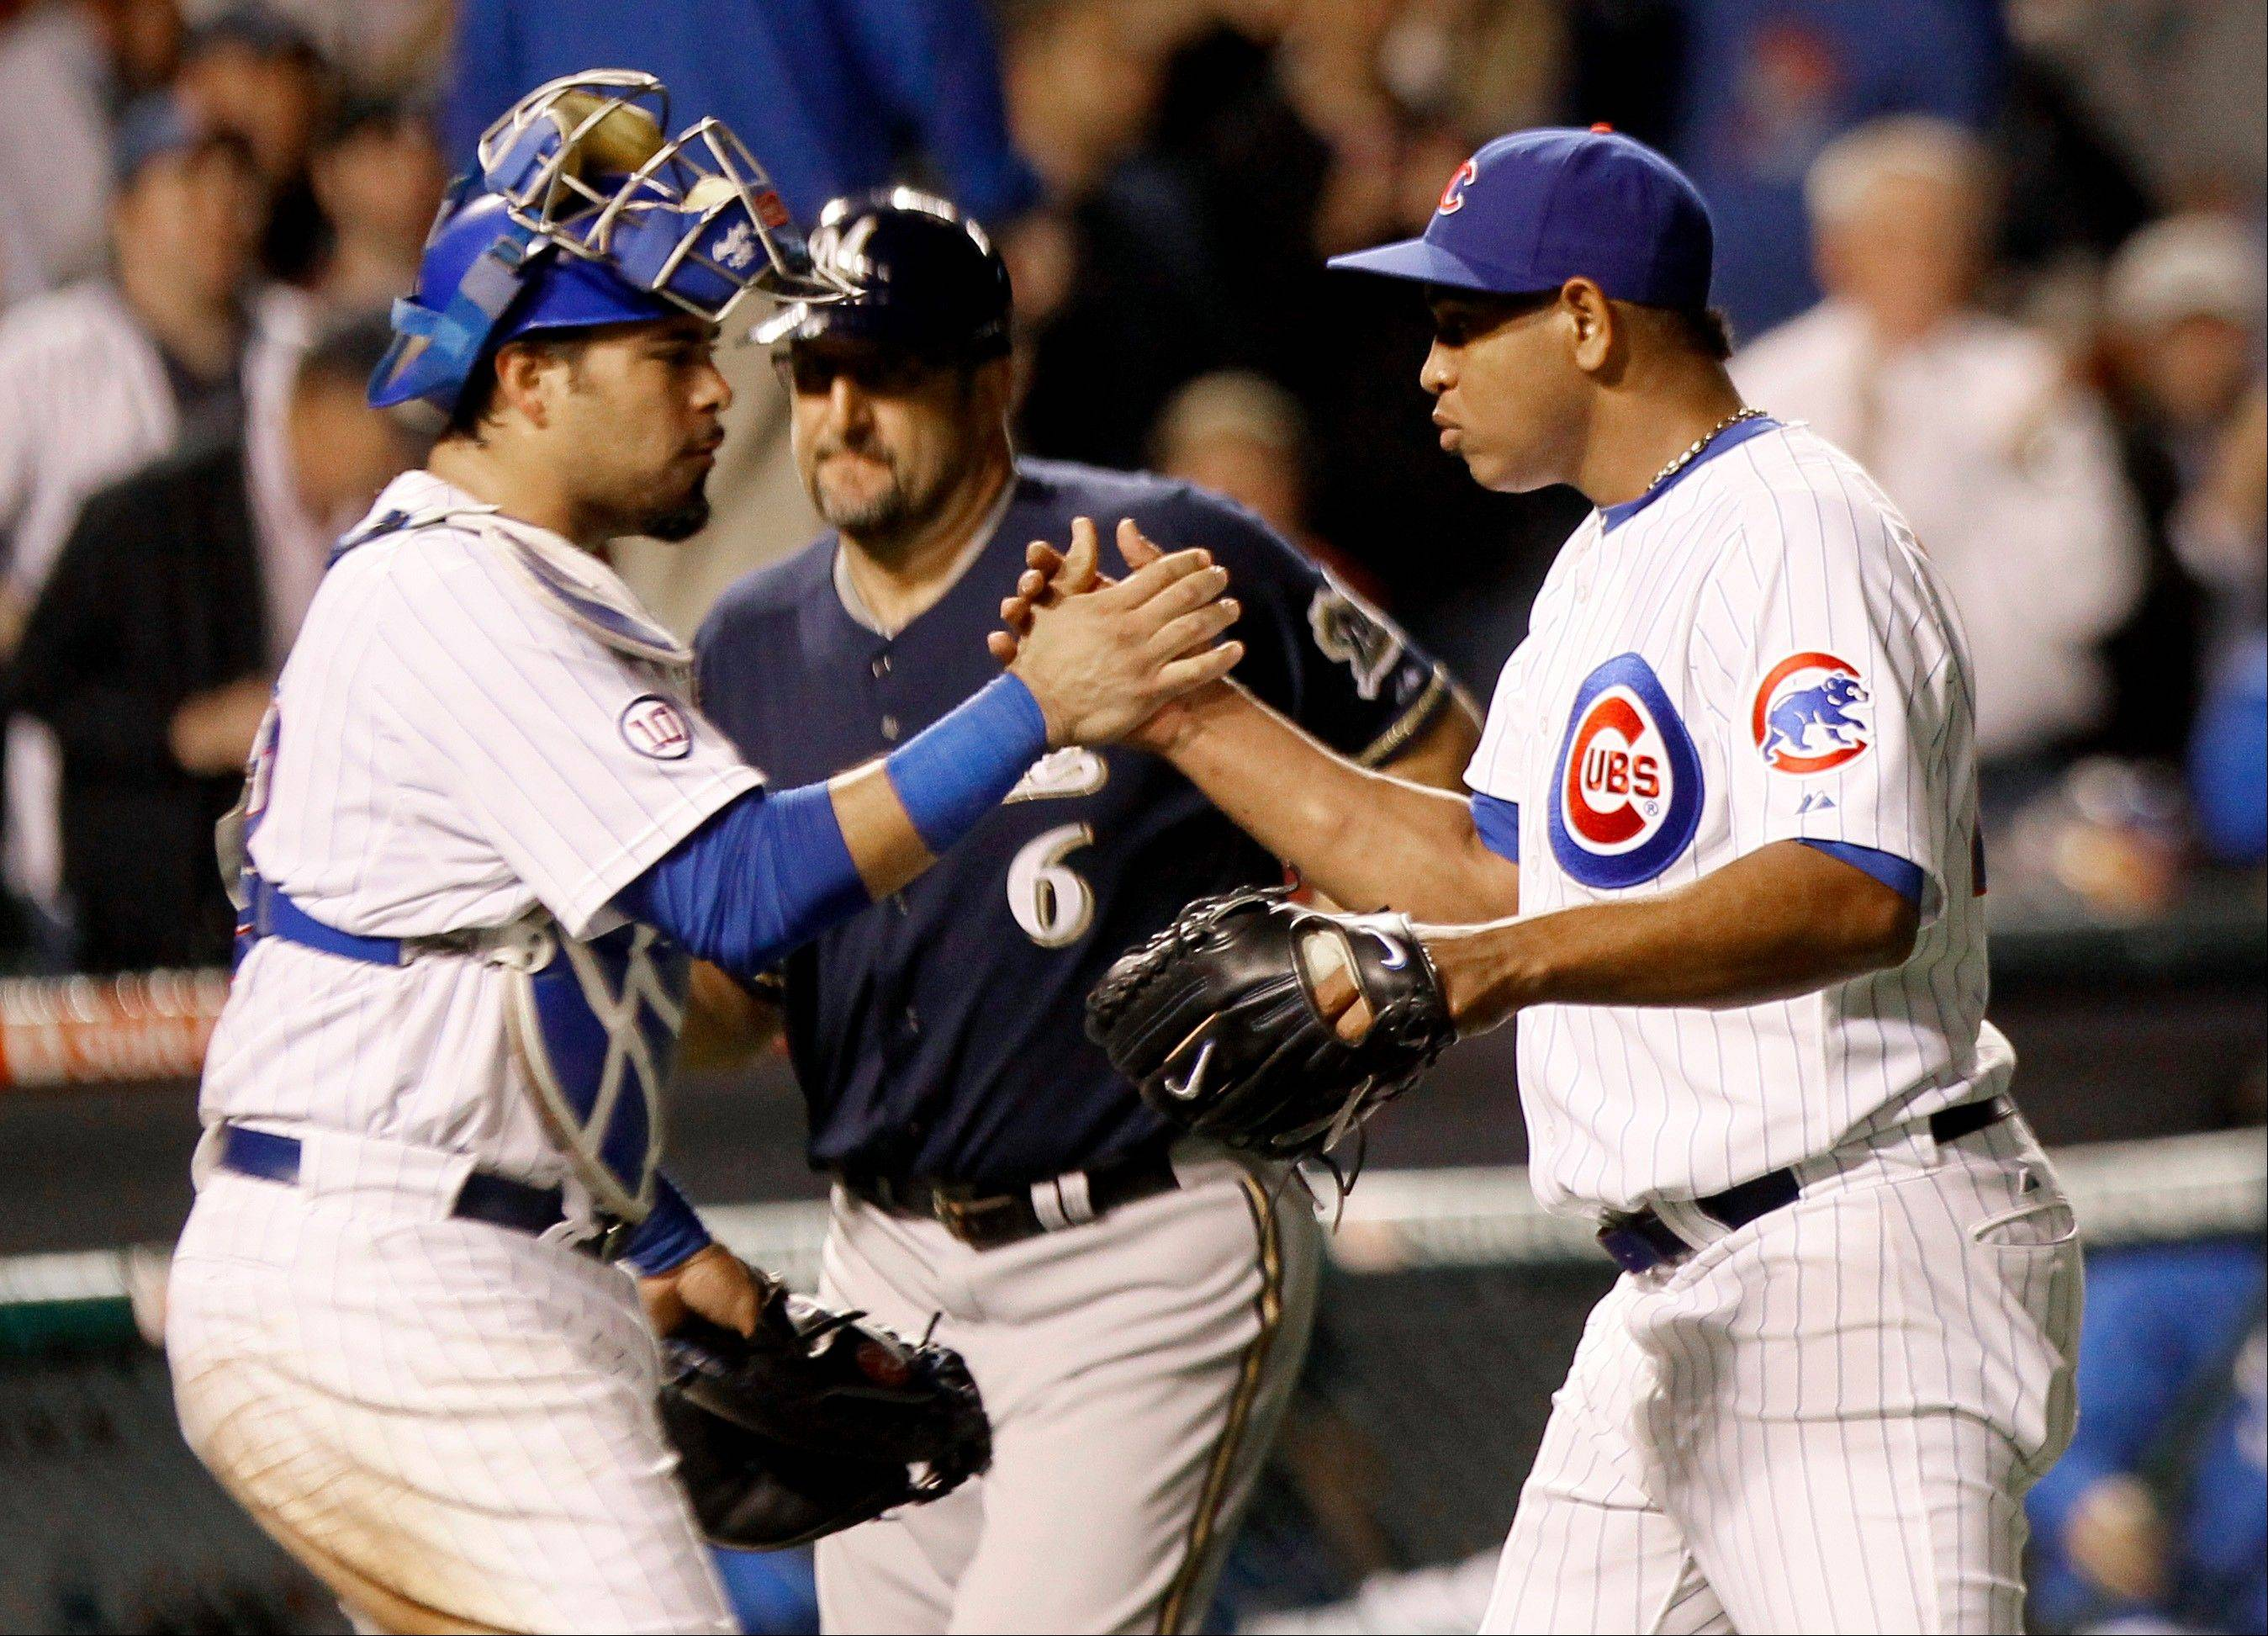 Chicago Cubs catcher Geovany Soto, left, celebrates with teammate relief pitcher Carlos Marmol, the Cubs� 5-2 win over the Milwaukee Brewers, as Brewers third base coach Ed Sedar heads back to the dugout after a baseball game Monday, Sept. 19, 2011, in Chicago.